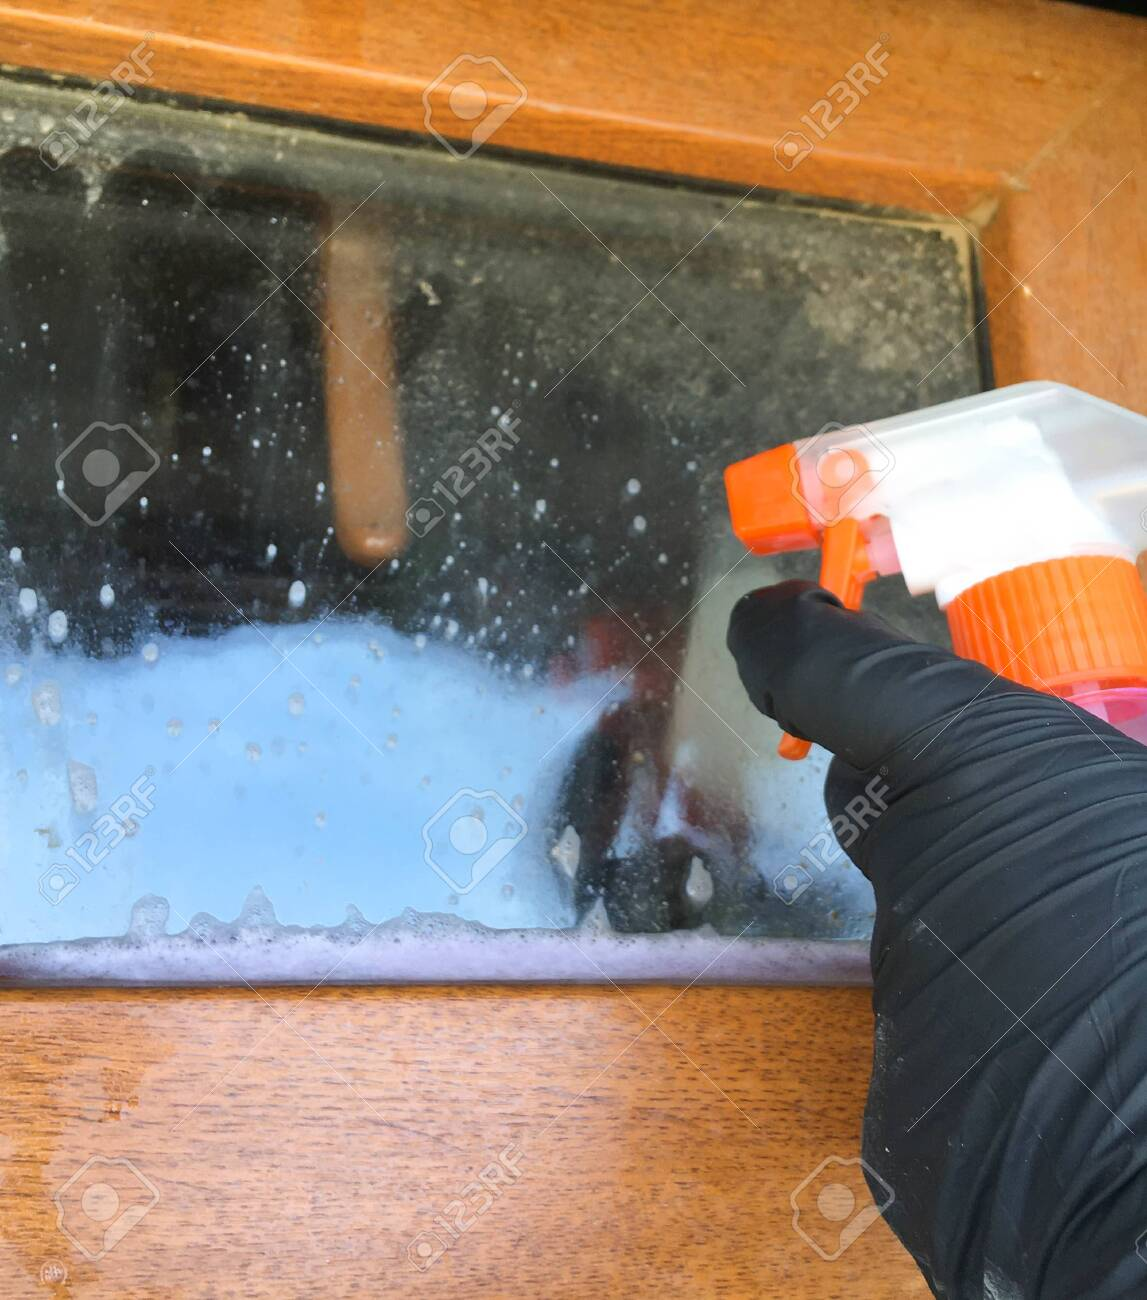 A woman in a black glove cleans a window with a spray bottle. House cleaning. Washing dirty window detergents in summer. - 149039779